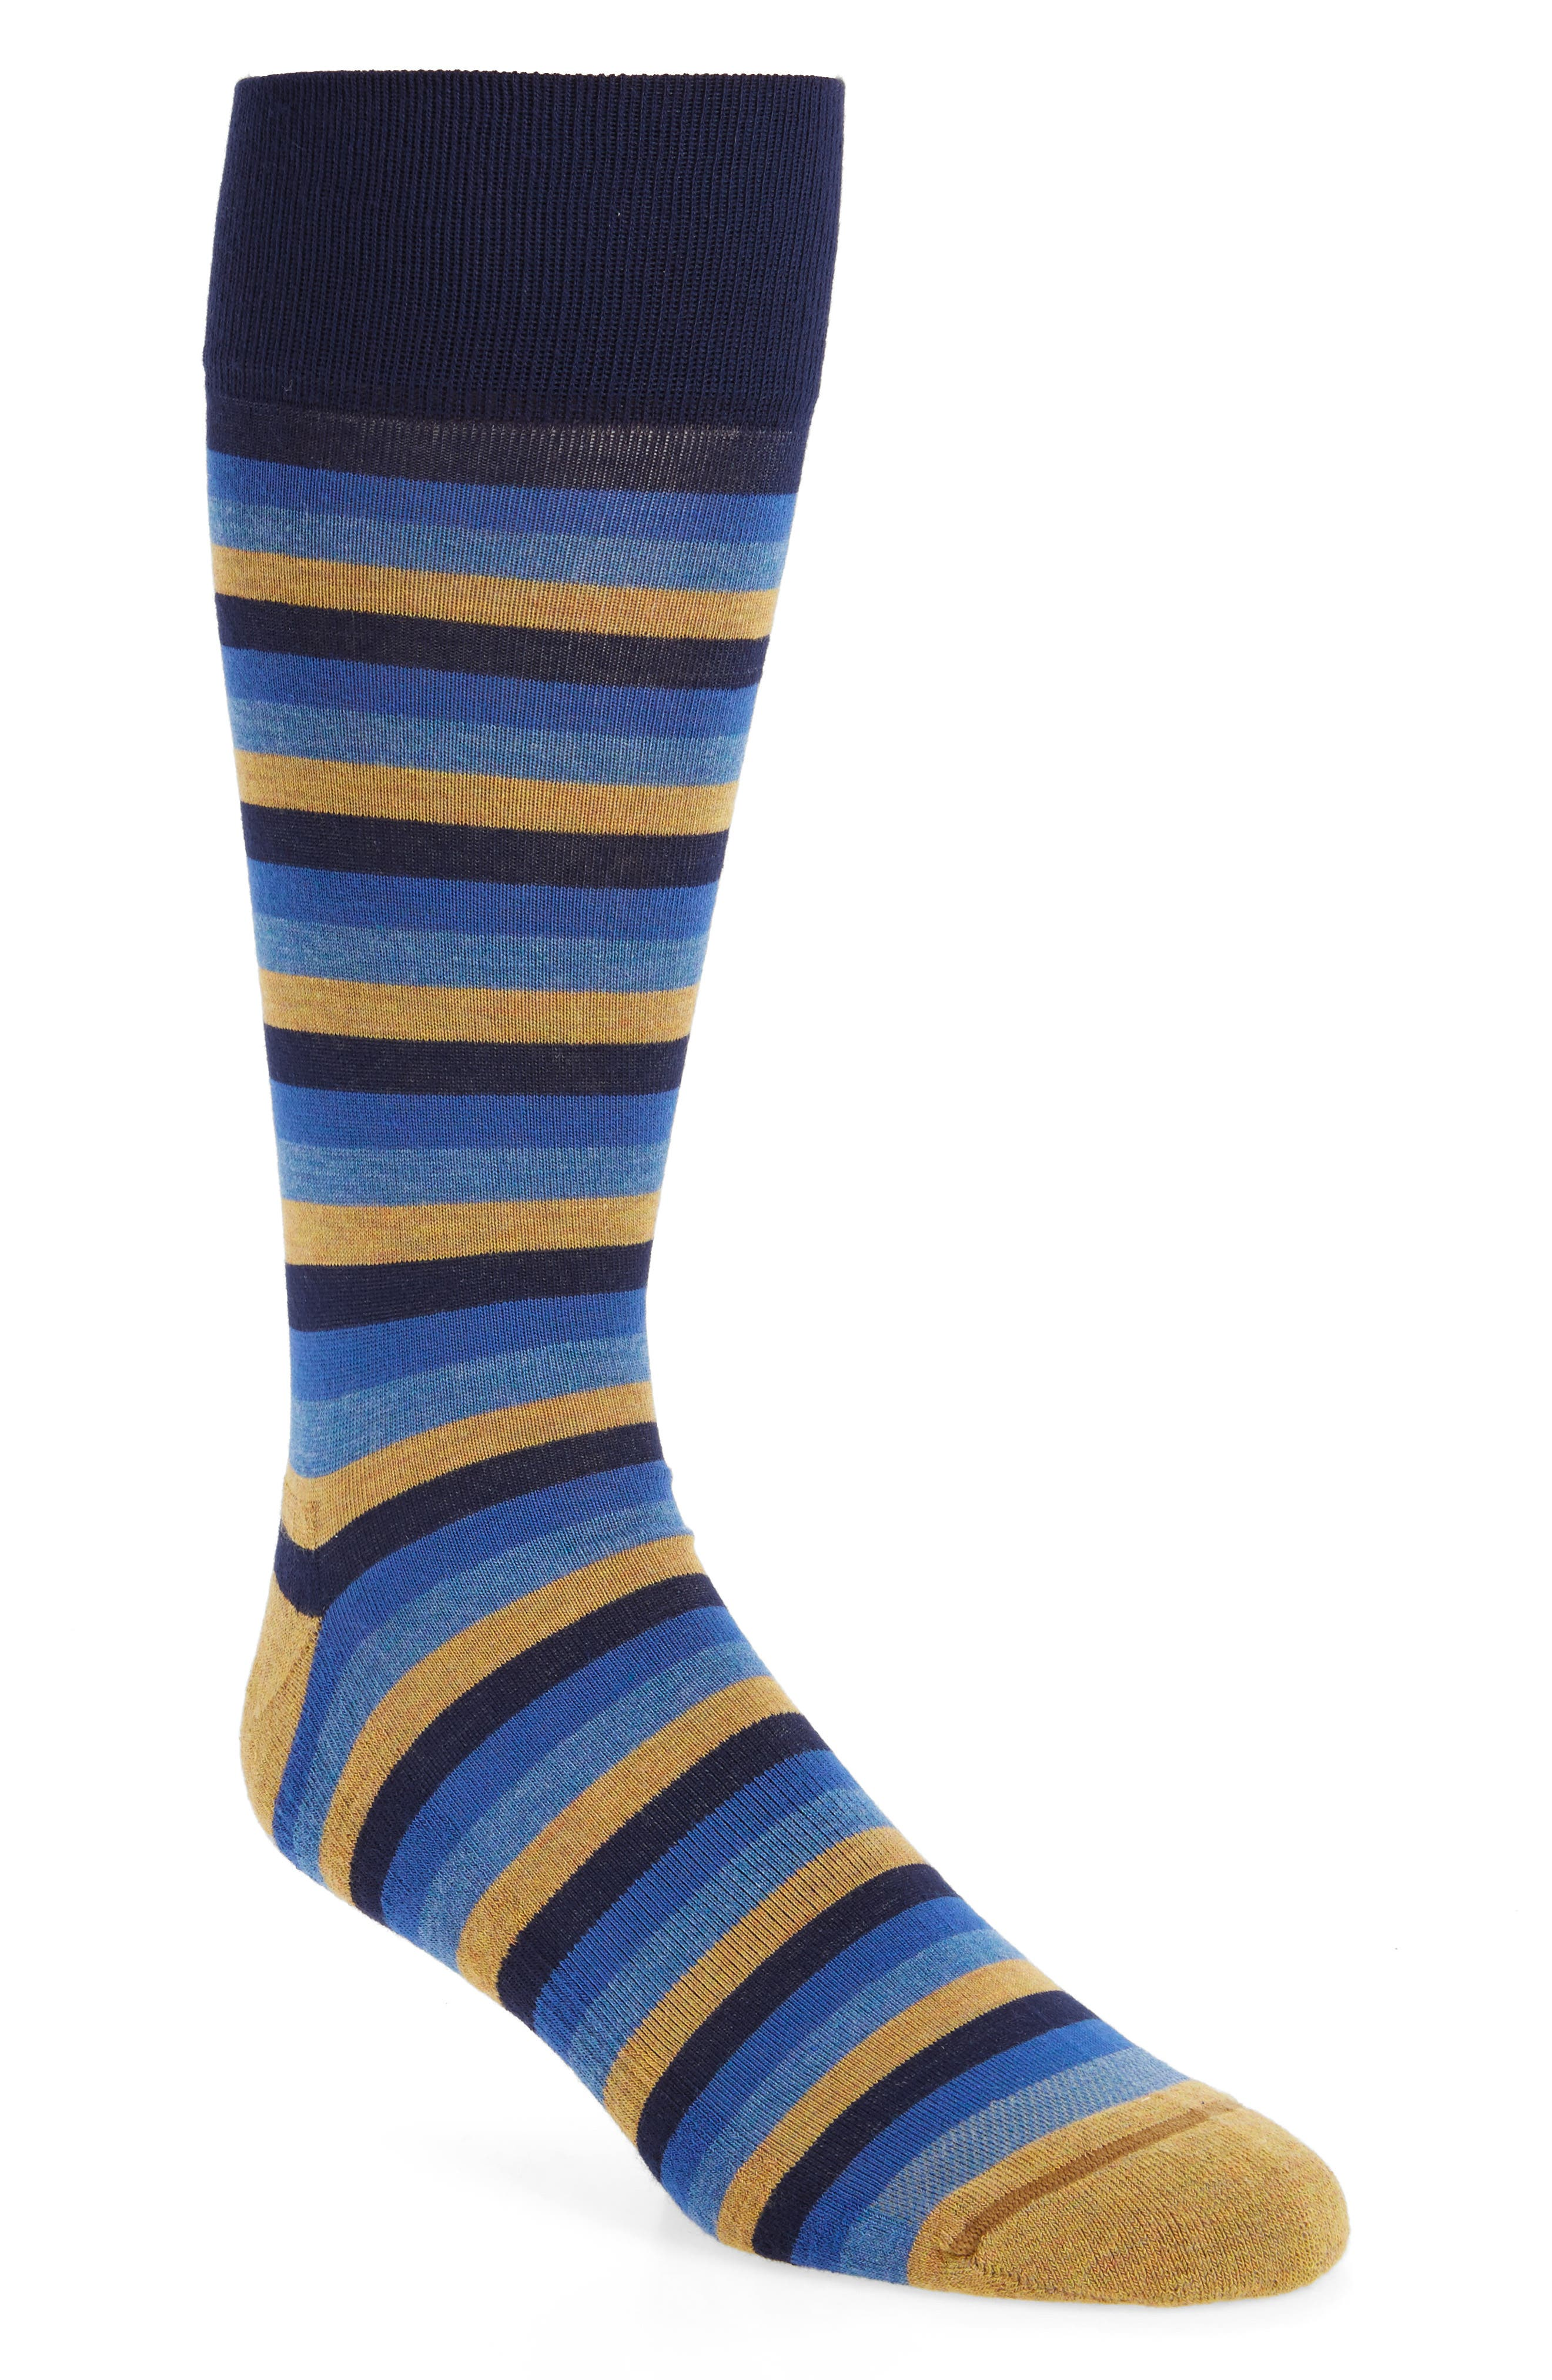 Stripe Socks,                             Main thumbnail 1, color,                             410